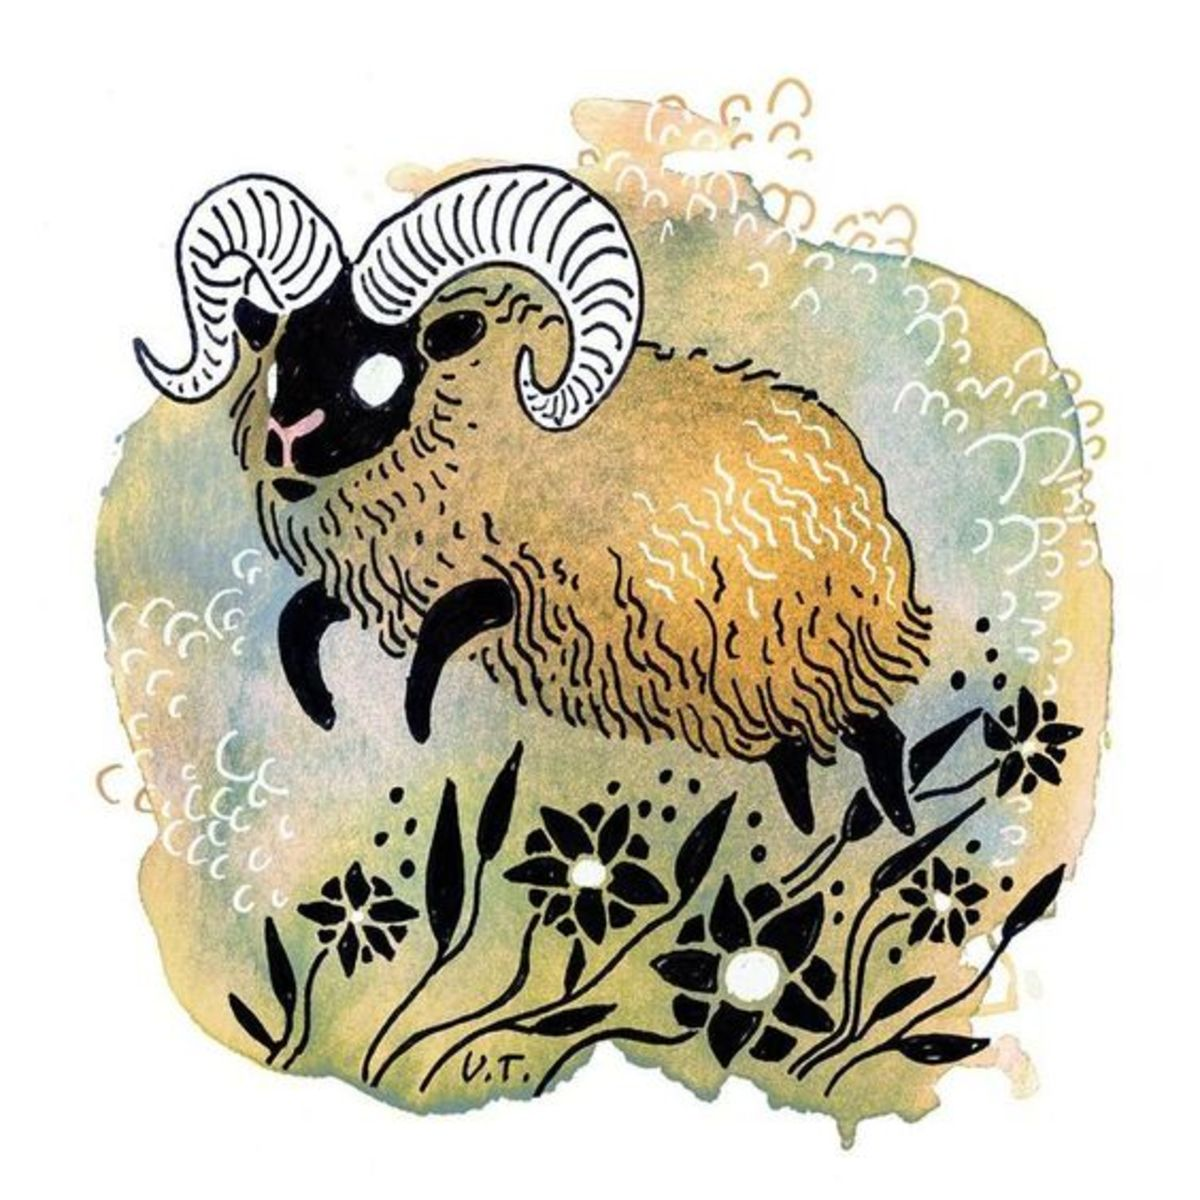 Cute Aries tattoo illustration by Ulla Thynell